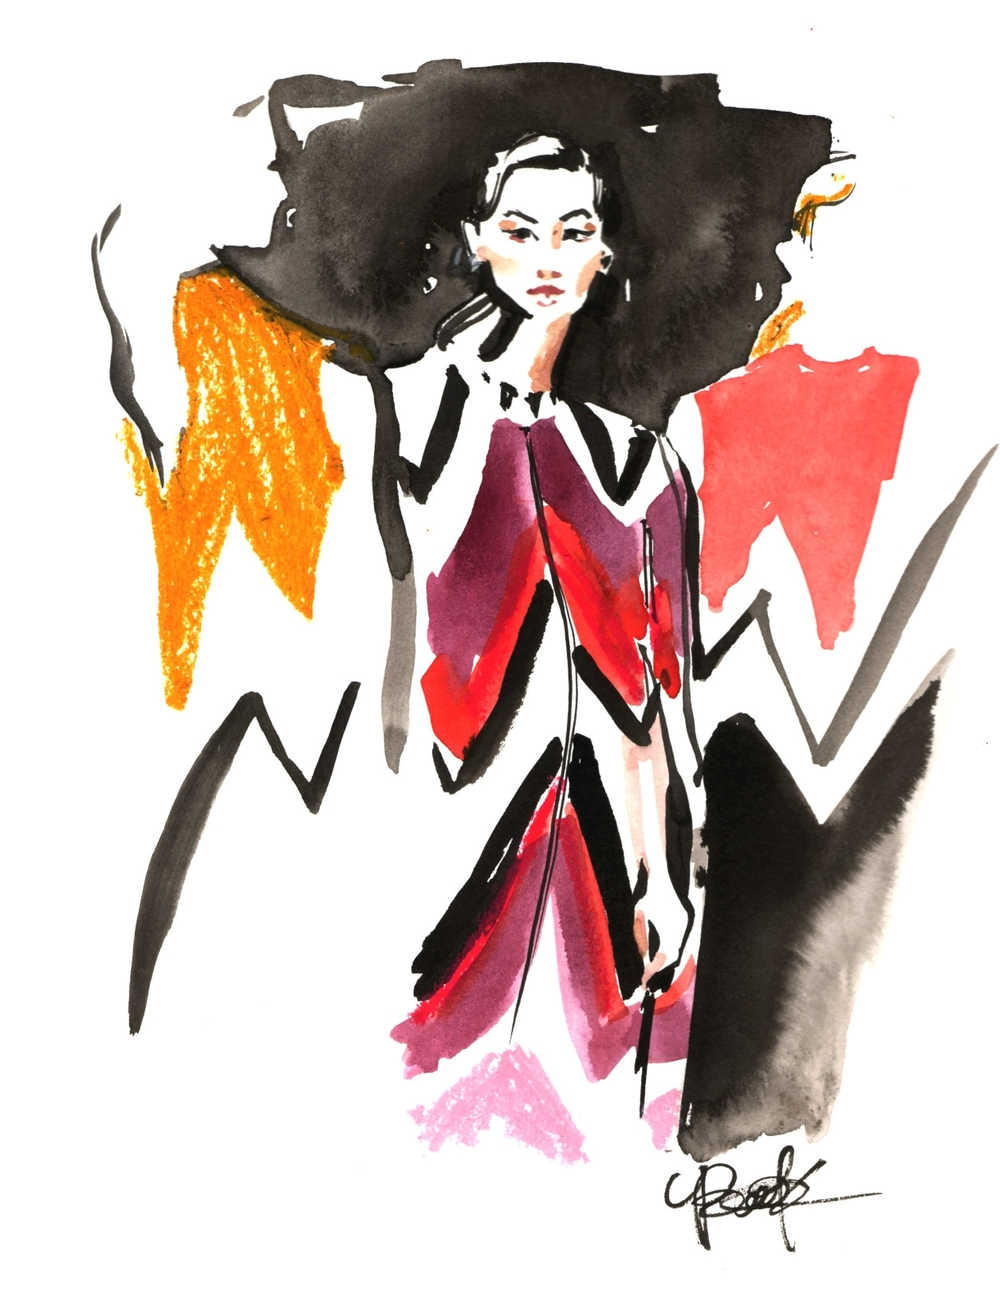 Inspired by Ferragamo FWSS16. Ink, watercolor, oil pastel.